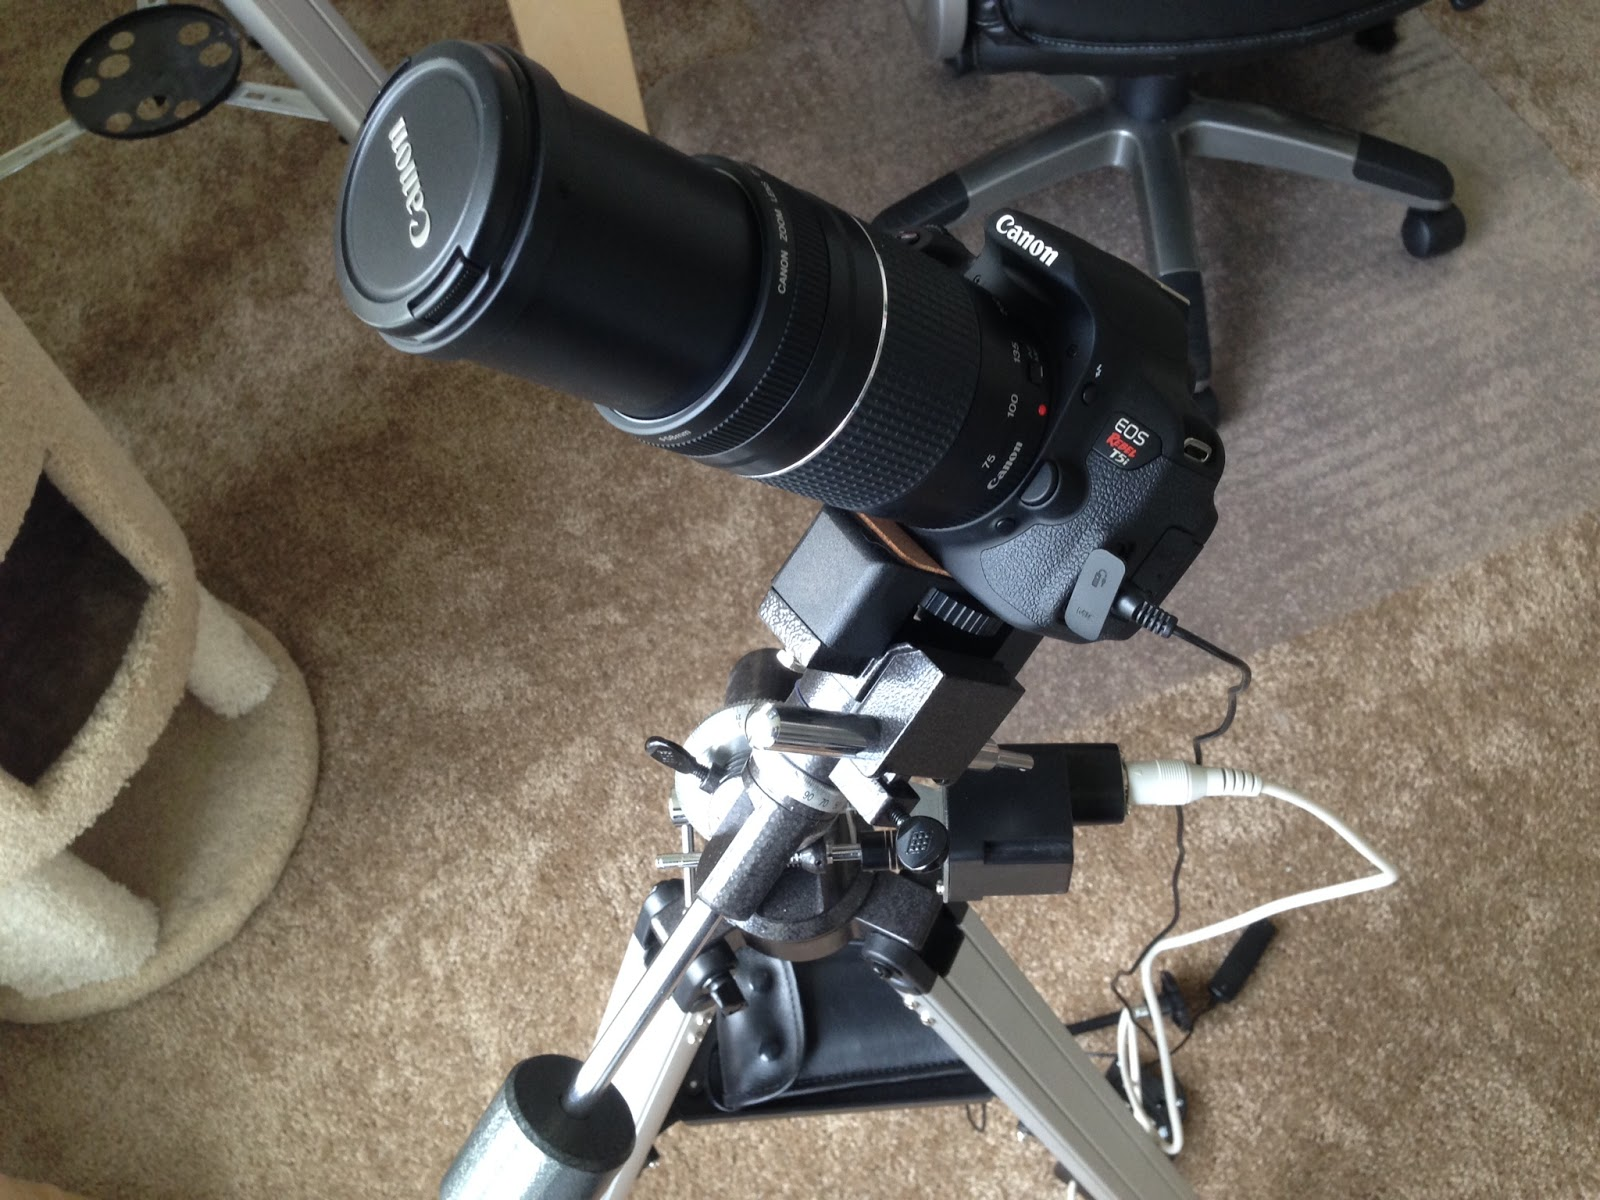 Canon DSLR camera on motorized EQ mount